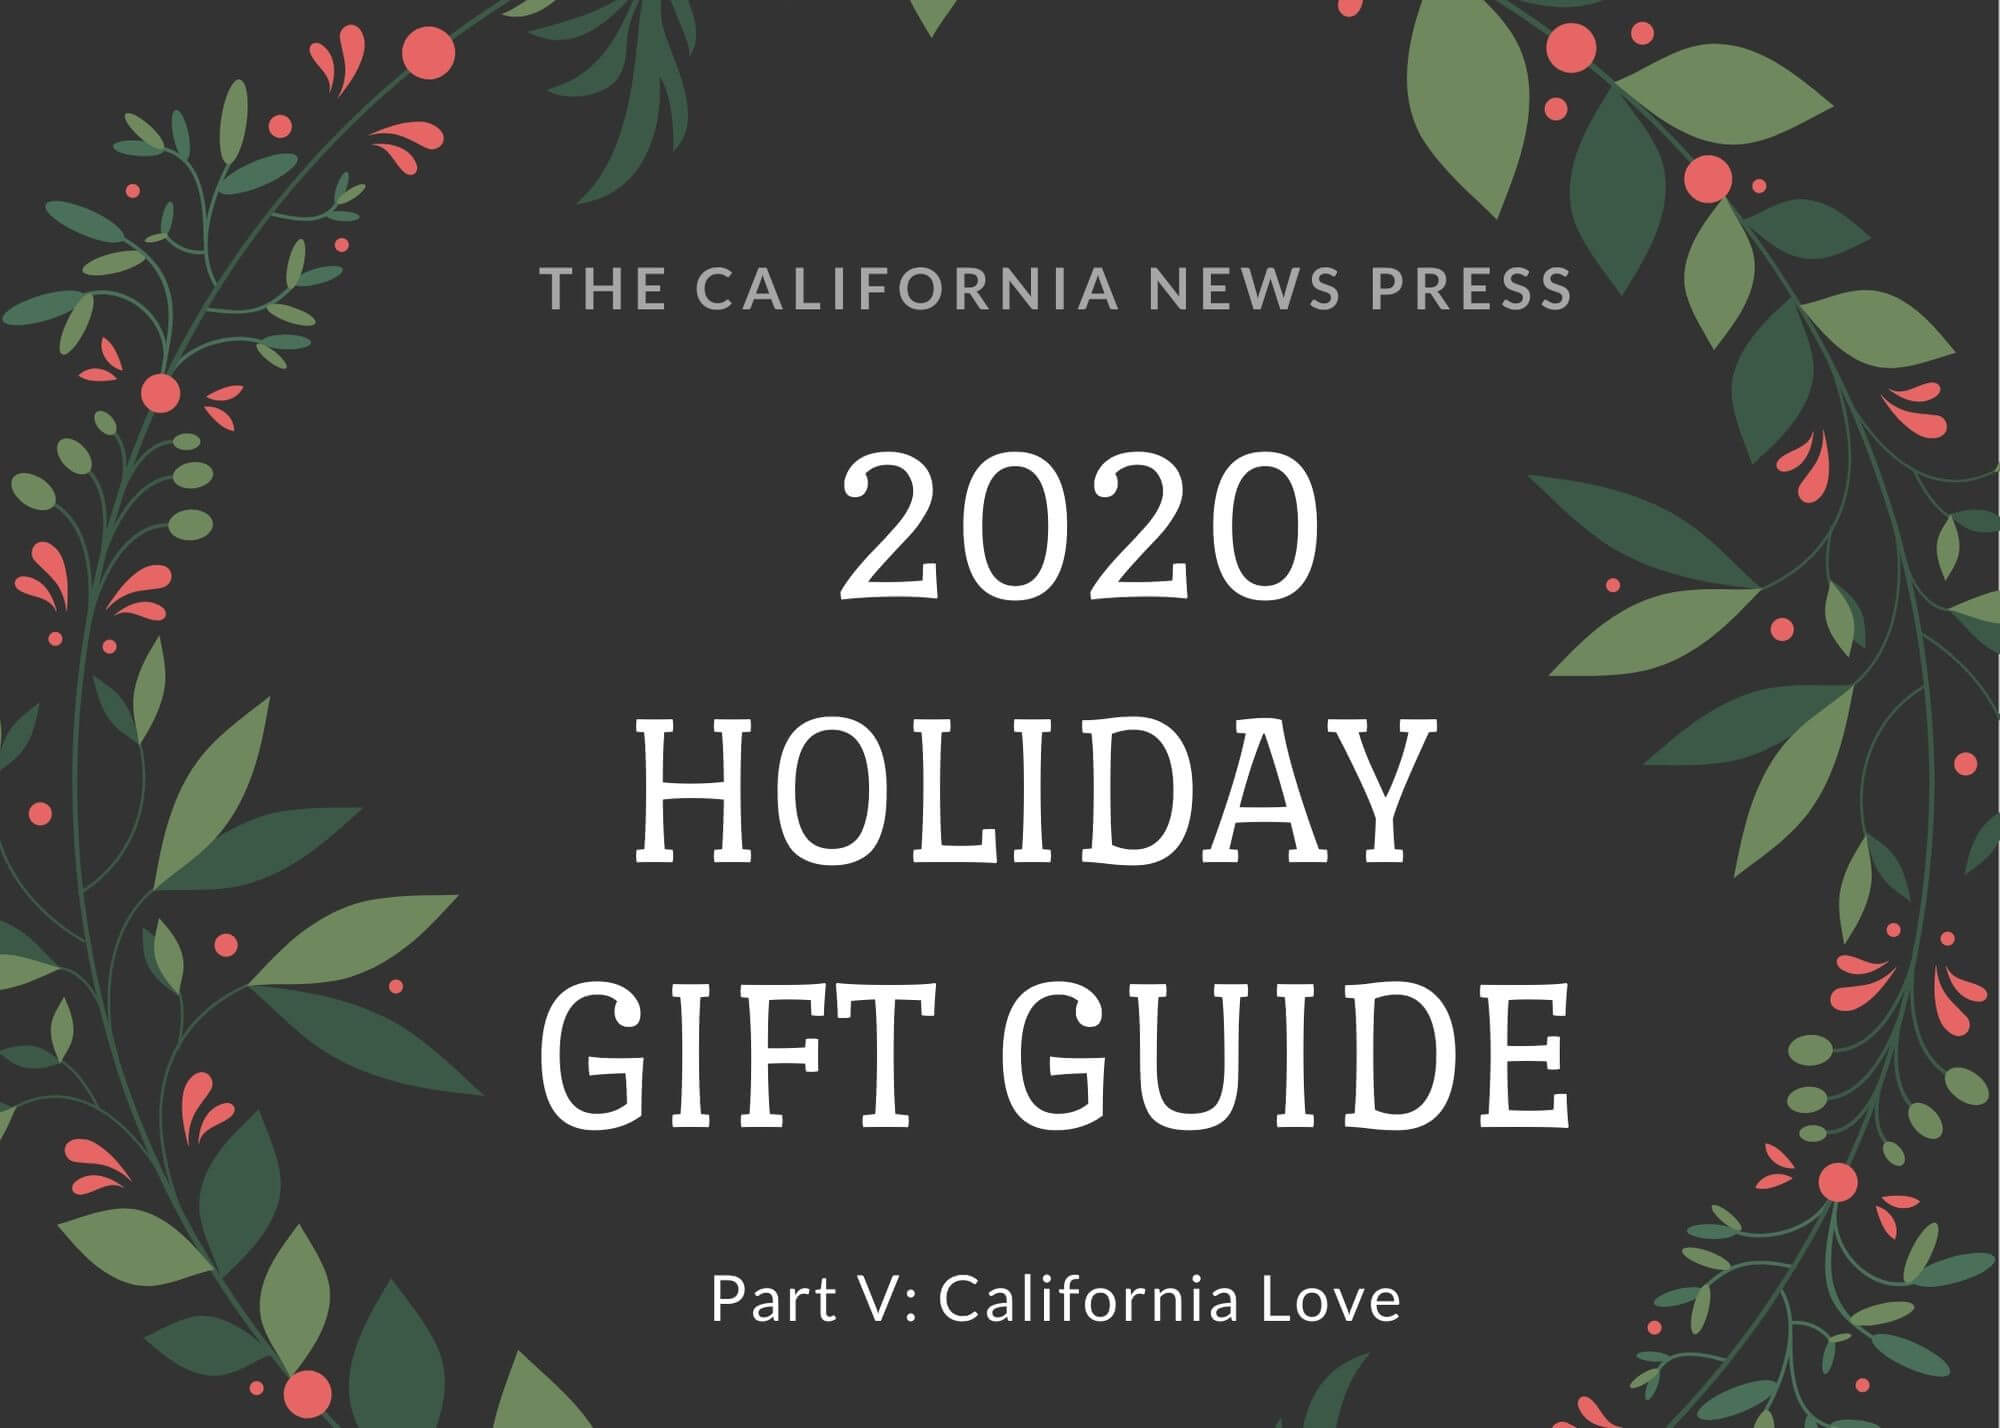 Graphic with leaves and berries plus text saying 2020 Holiday Gift Guide, Part V: California Love